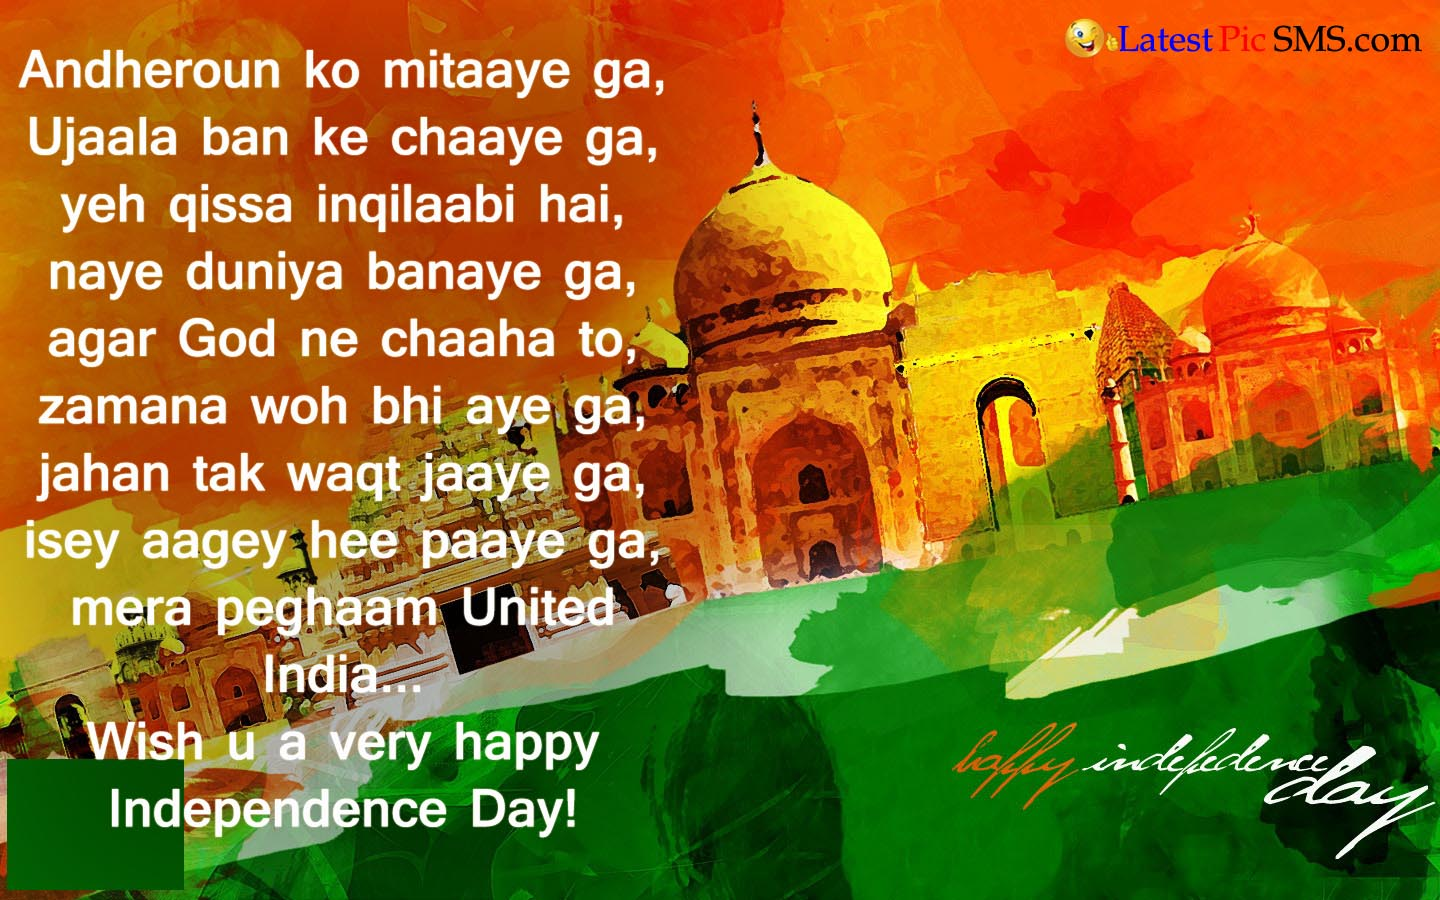 Happy Independence day Full HD Wallpaper Images - Happy Independence Day India Quotes, Wishes and Greetings for Whatsapp